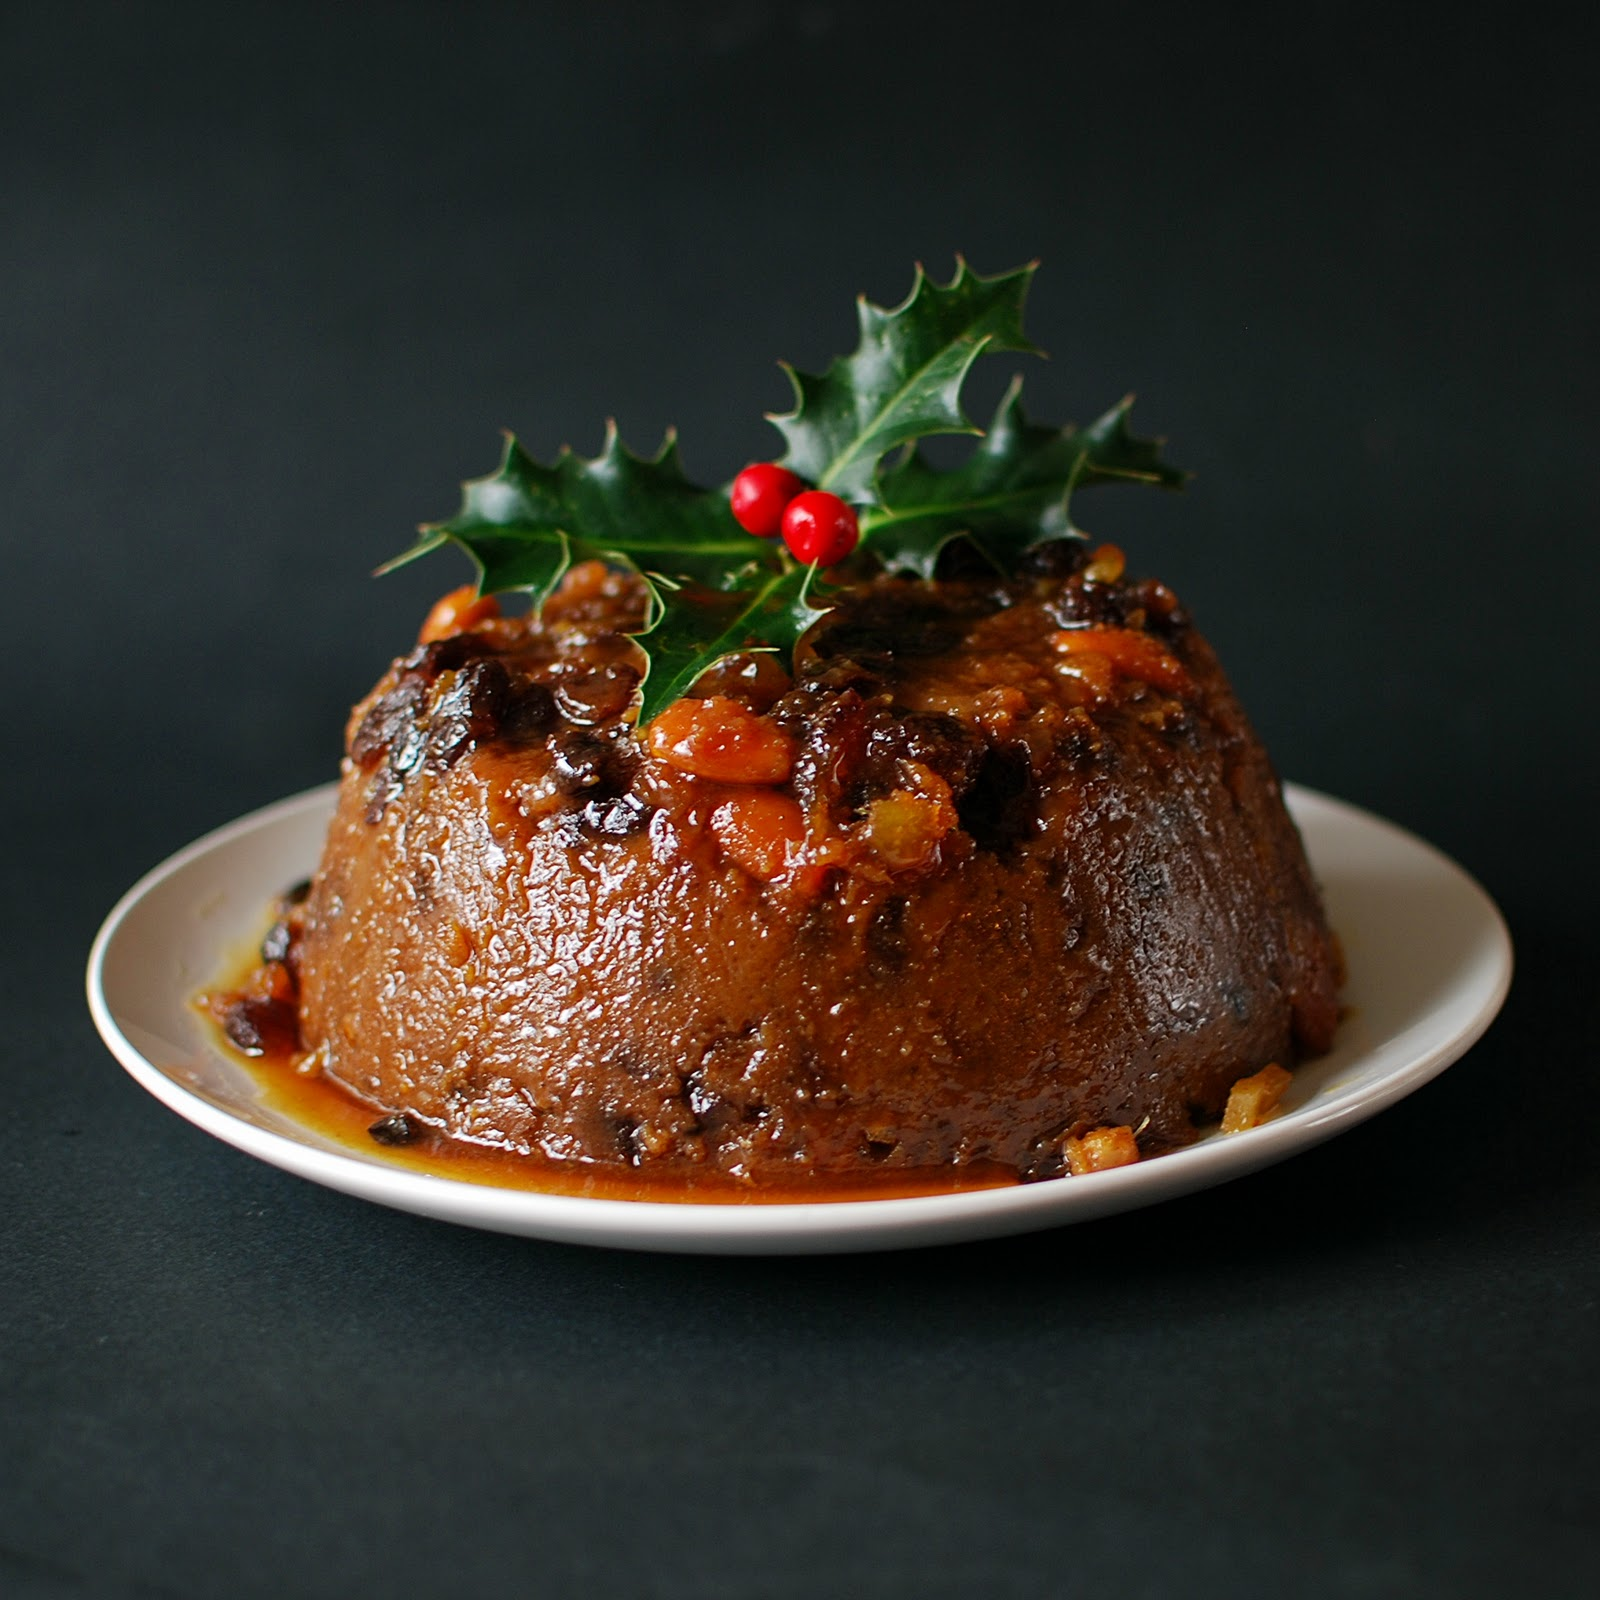 Free From The Three: Gluten Free Christmas Pudding